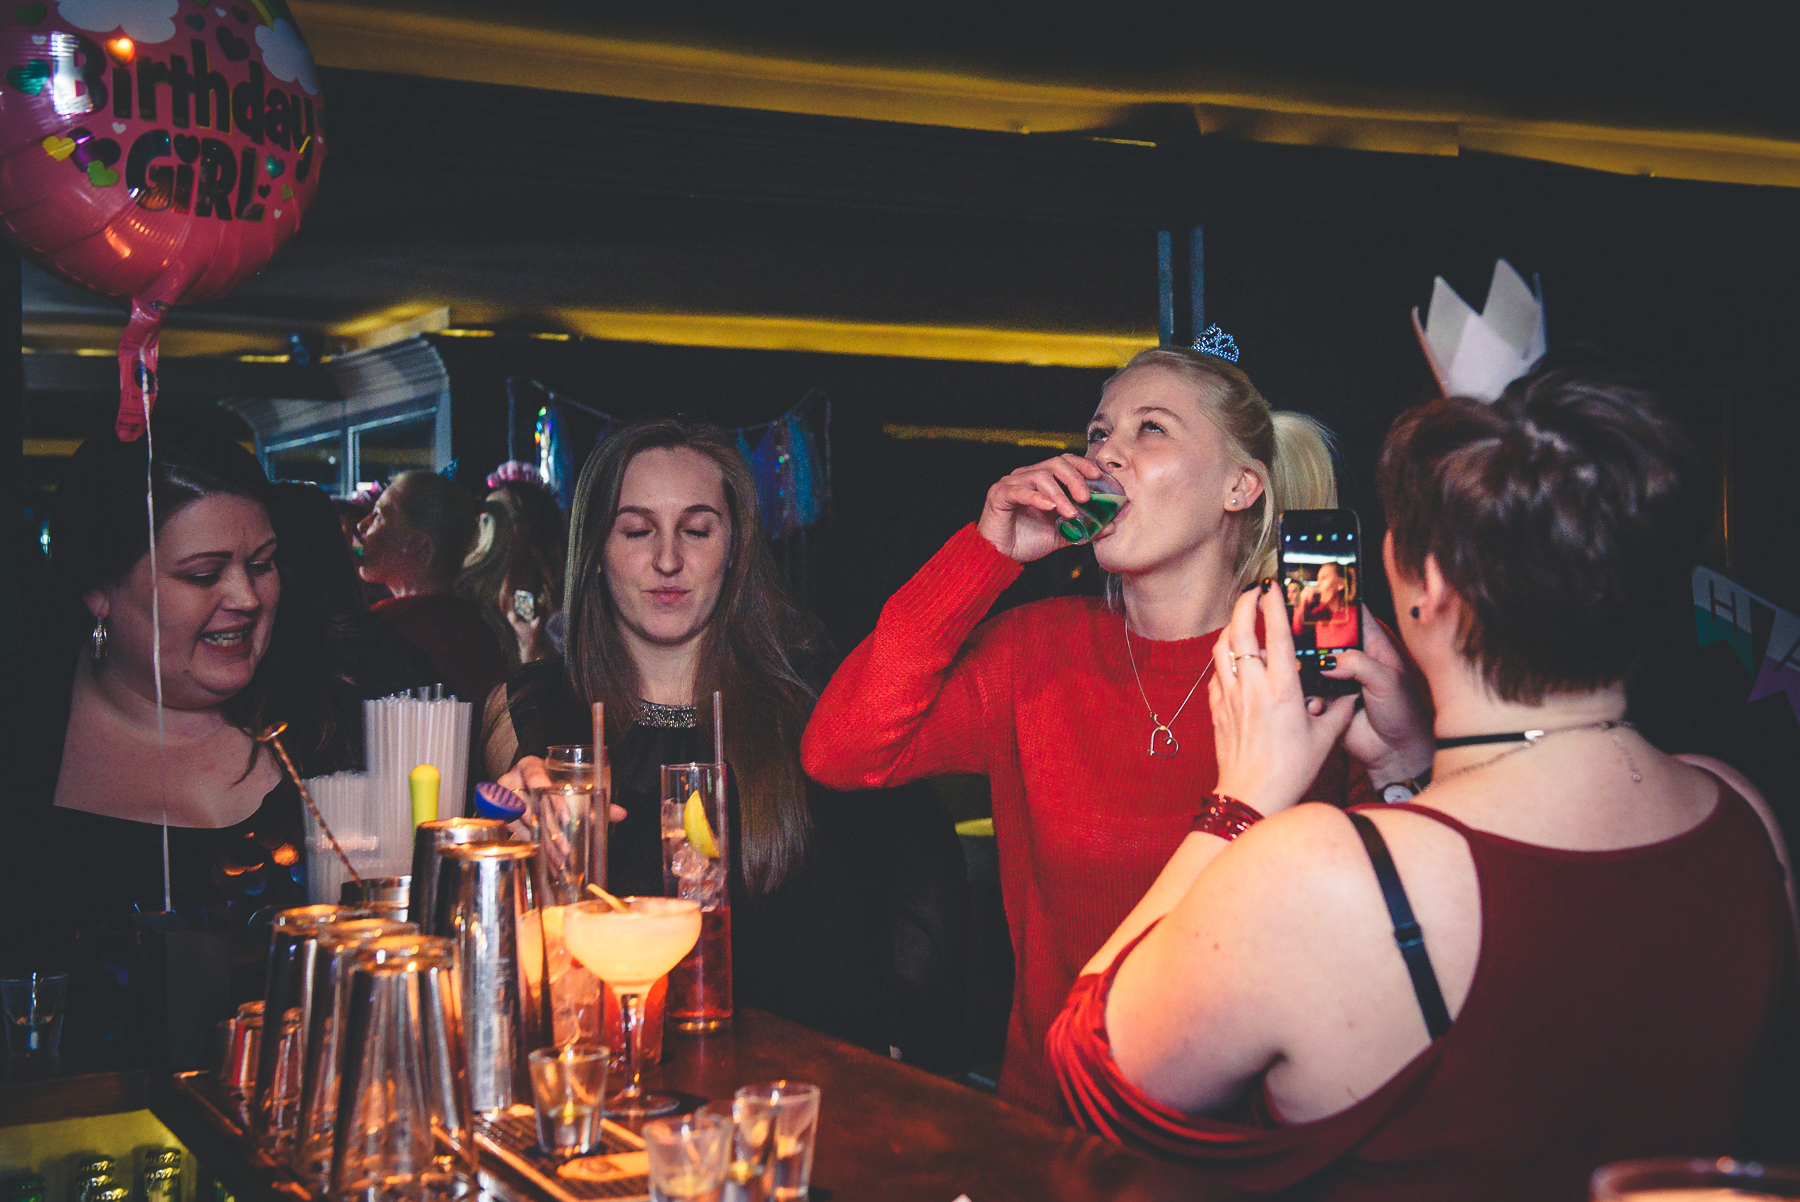 Angels cocktail bar Oxford 09.02.2019-067.jpg